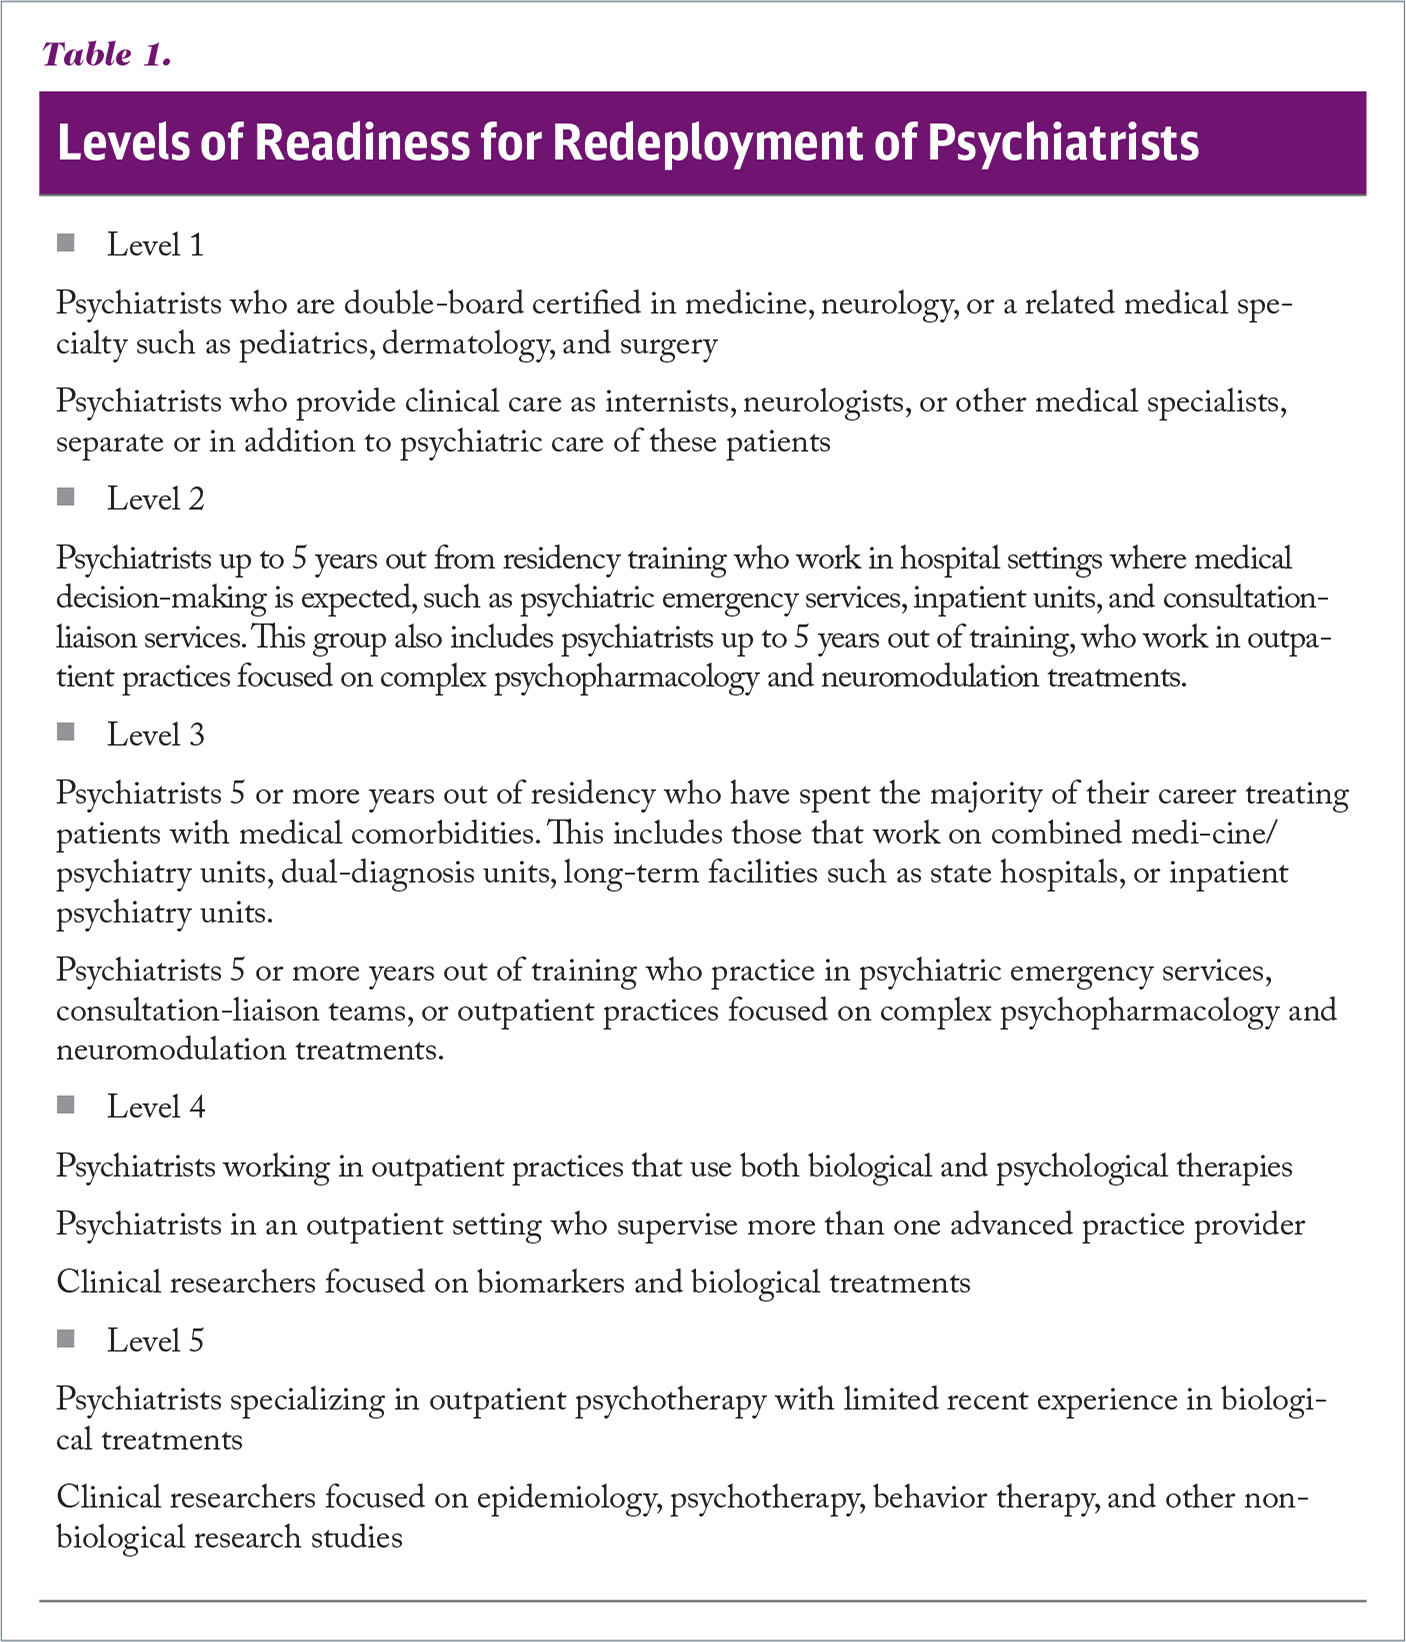 Levels of Readiness for Redeployment of Psychiatrists